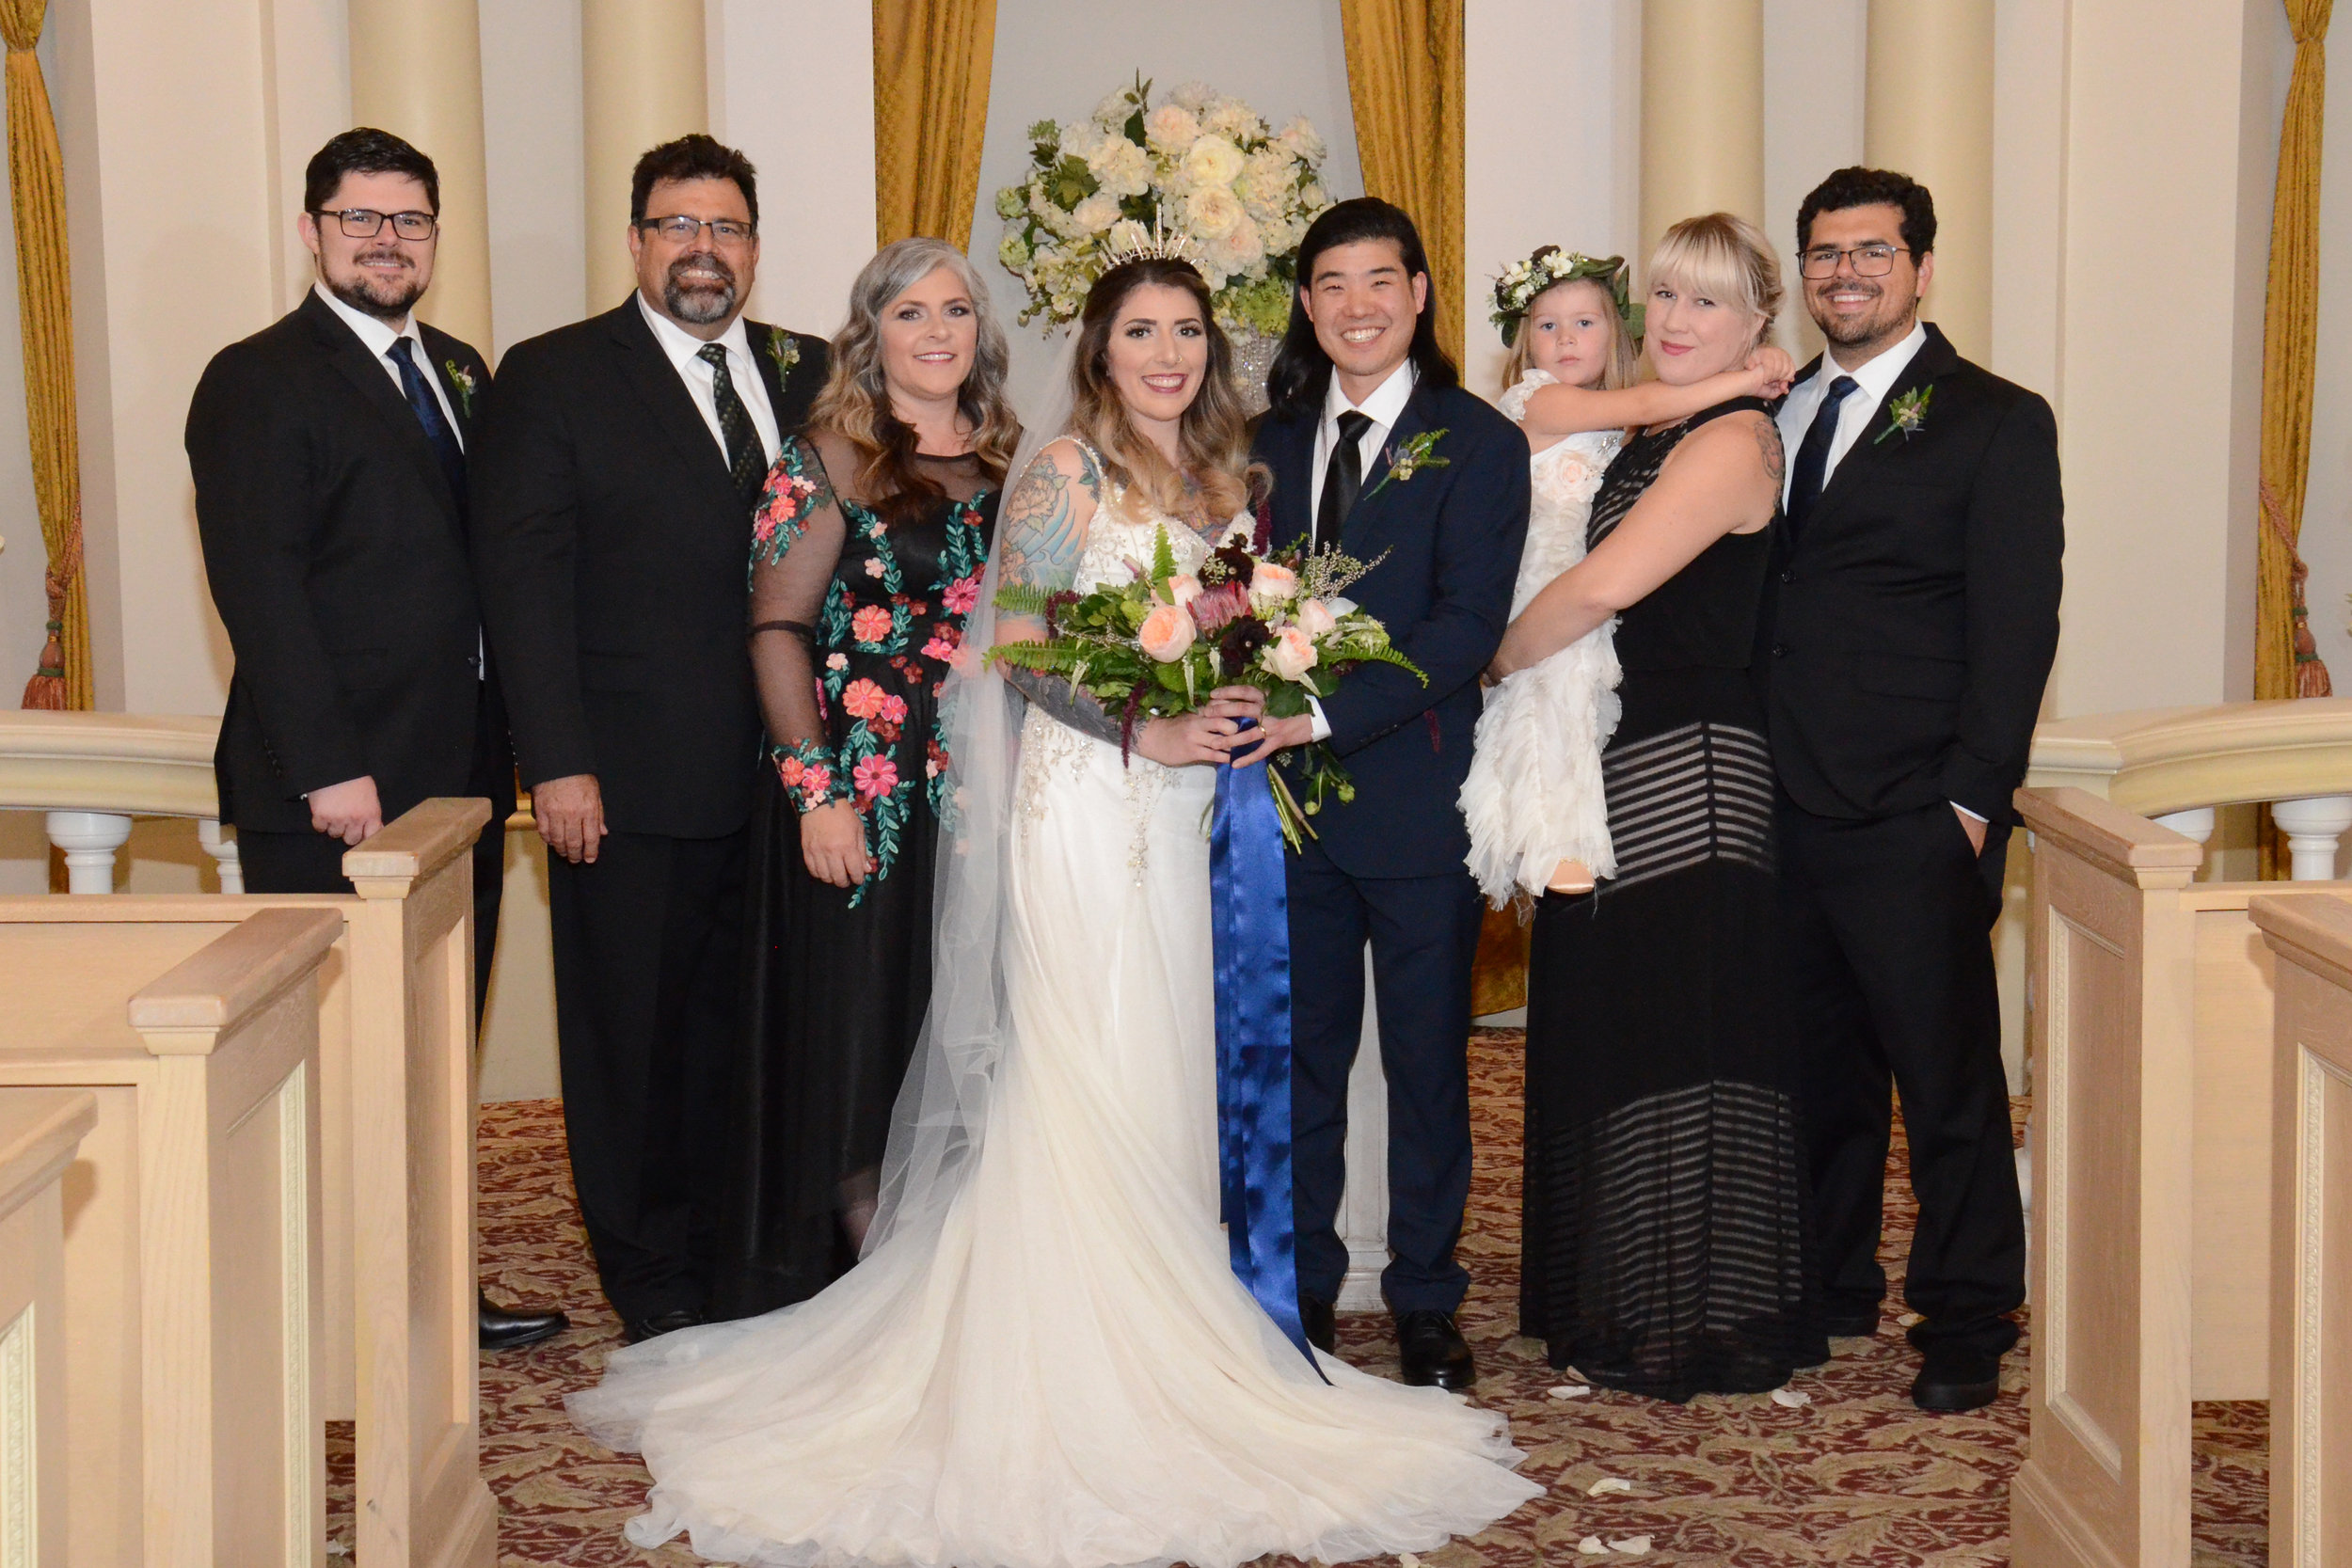 This is our whole crew from left to right is Patrick, Jeff, Michelle, Ashley, Scott, Layla, Lauren, and Gary. Ashley is wearing Andrea by Maggie Sottero for her wedding.